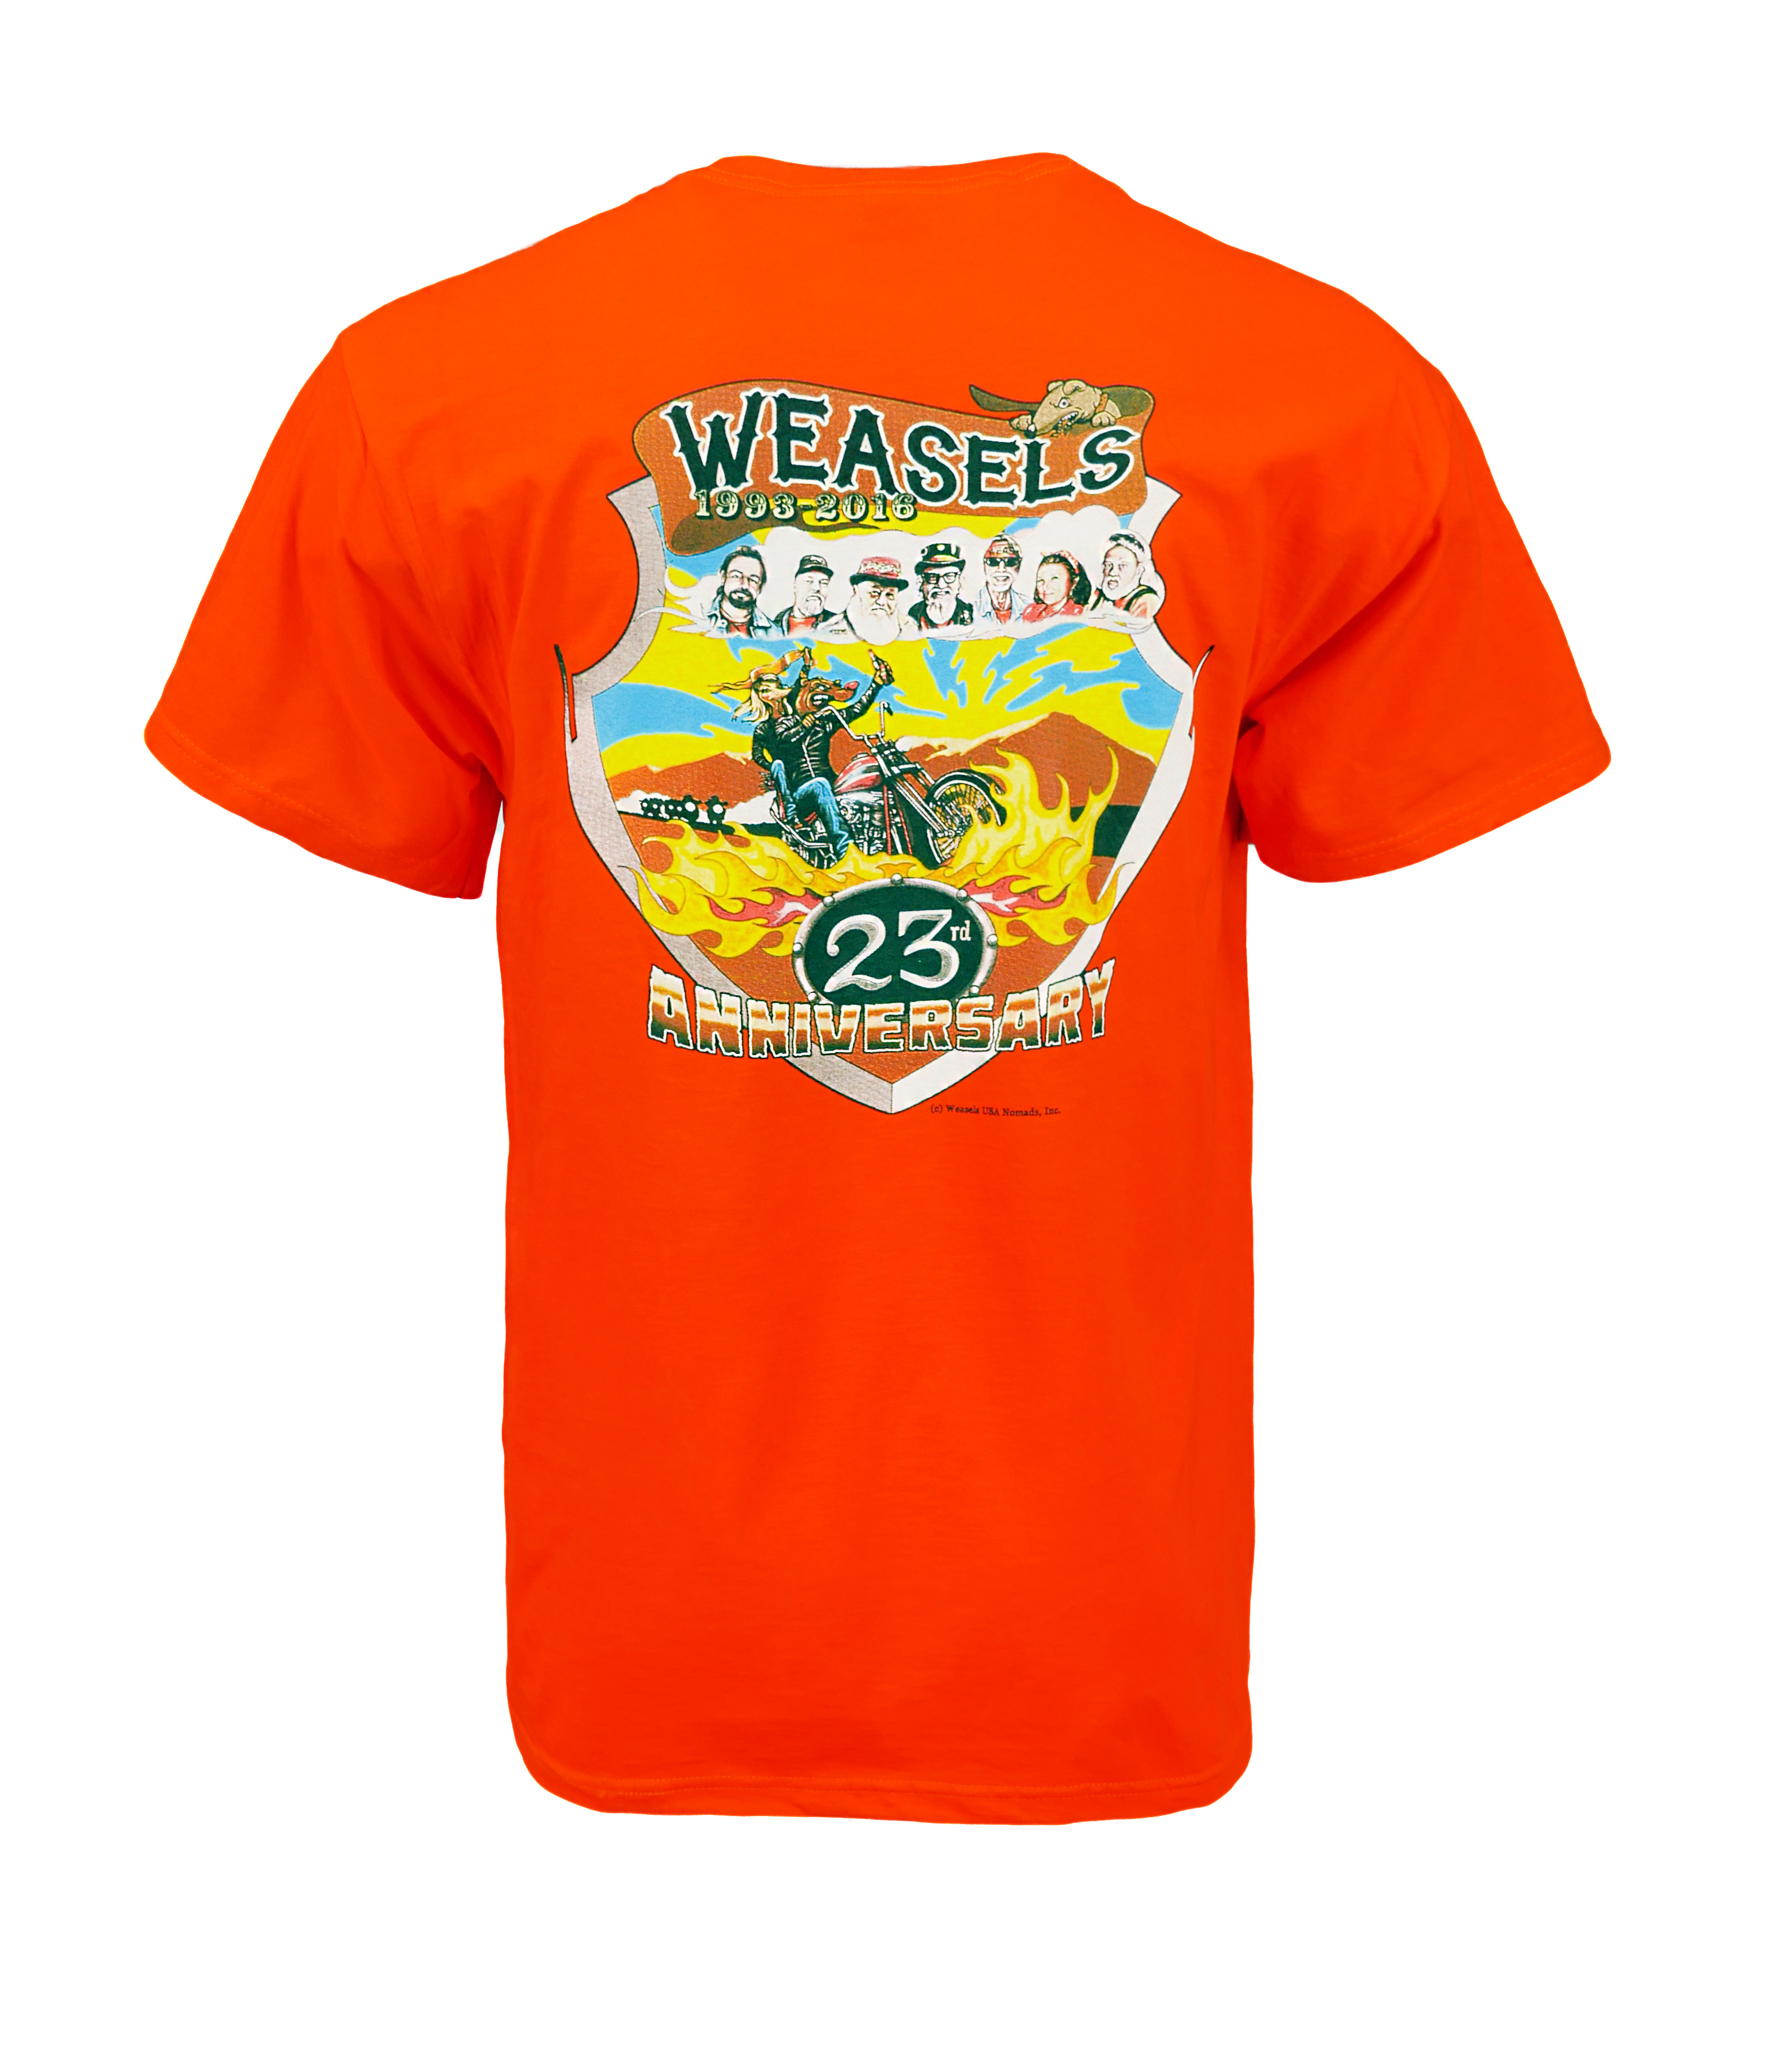 weasels shirt production photo